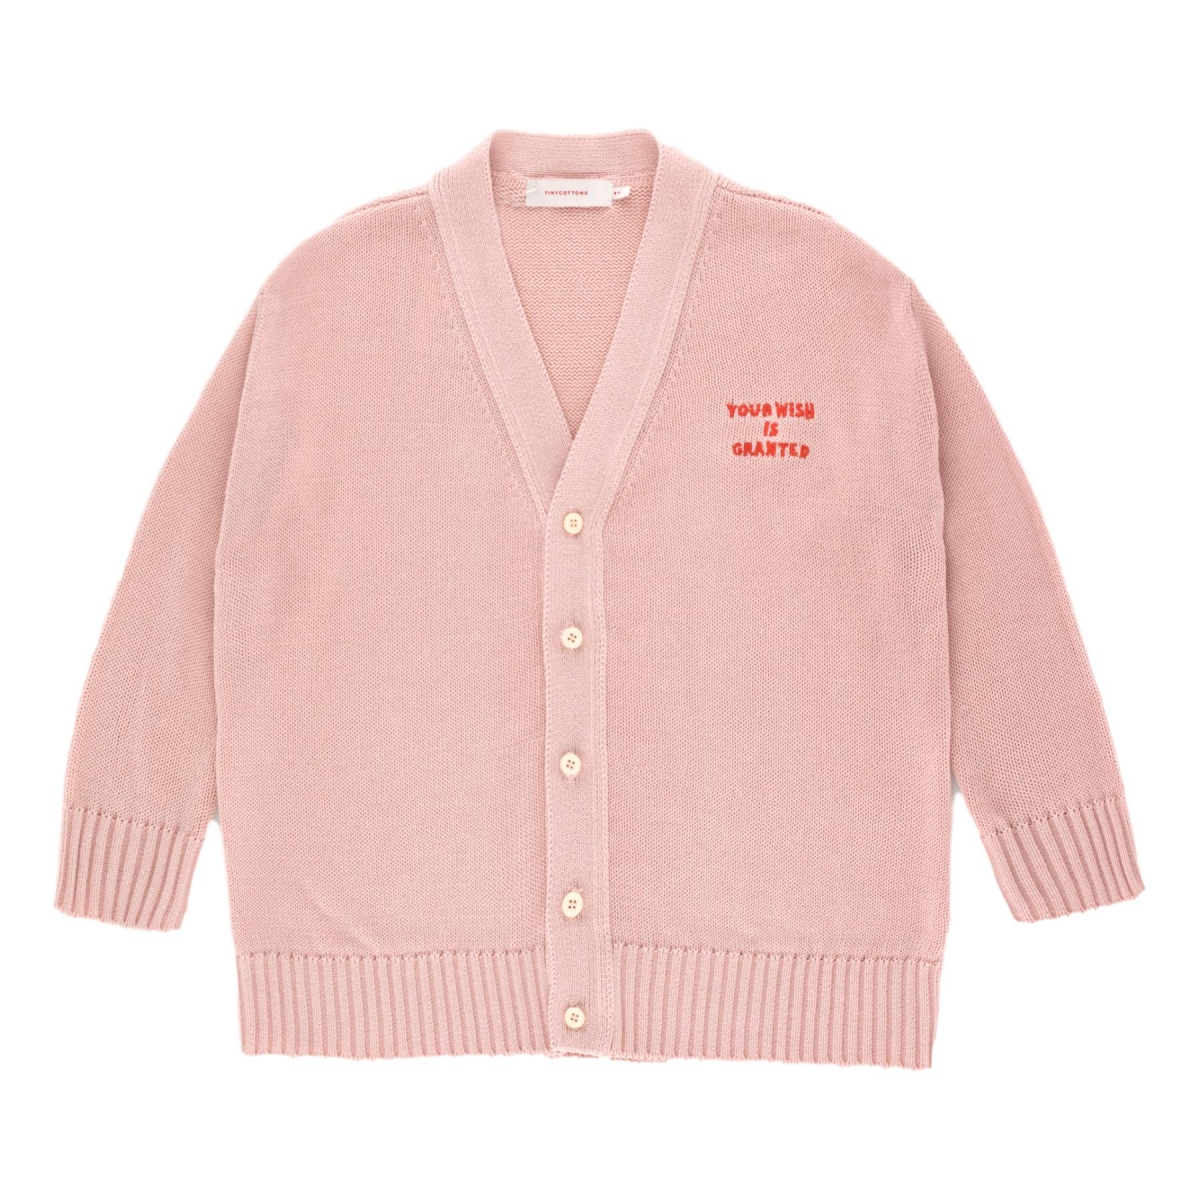 Tiny Cottons - Your Wish Is Granted Cardigan pink - 1